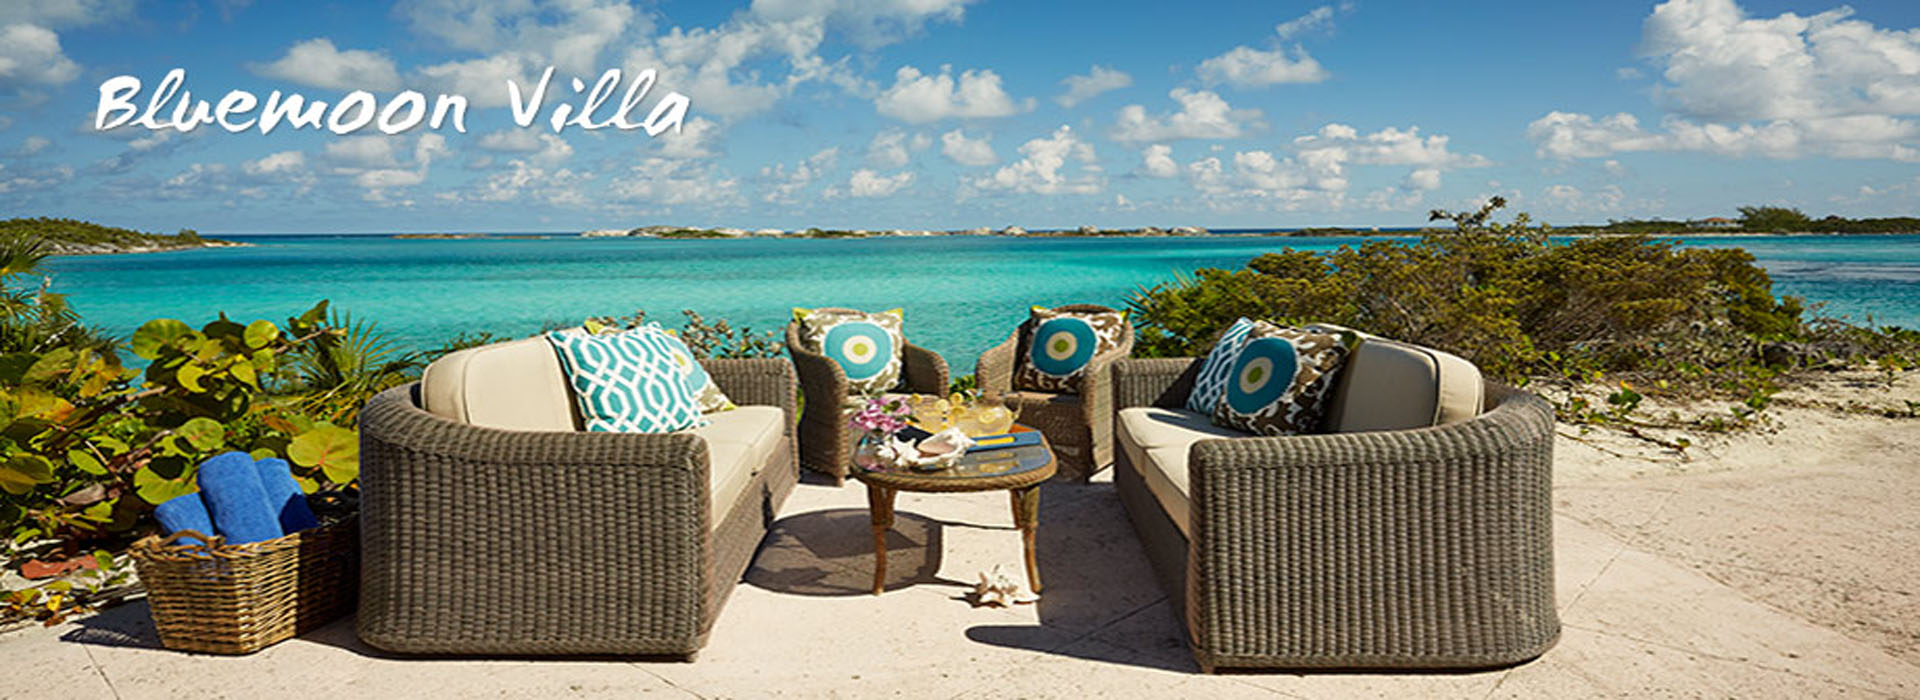 Bluemoon Villa at Fowl Cay